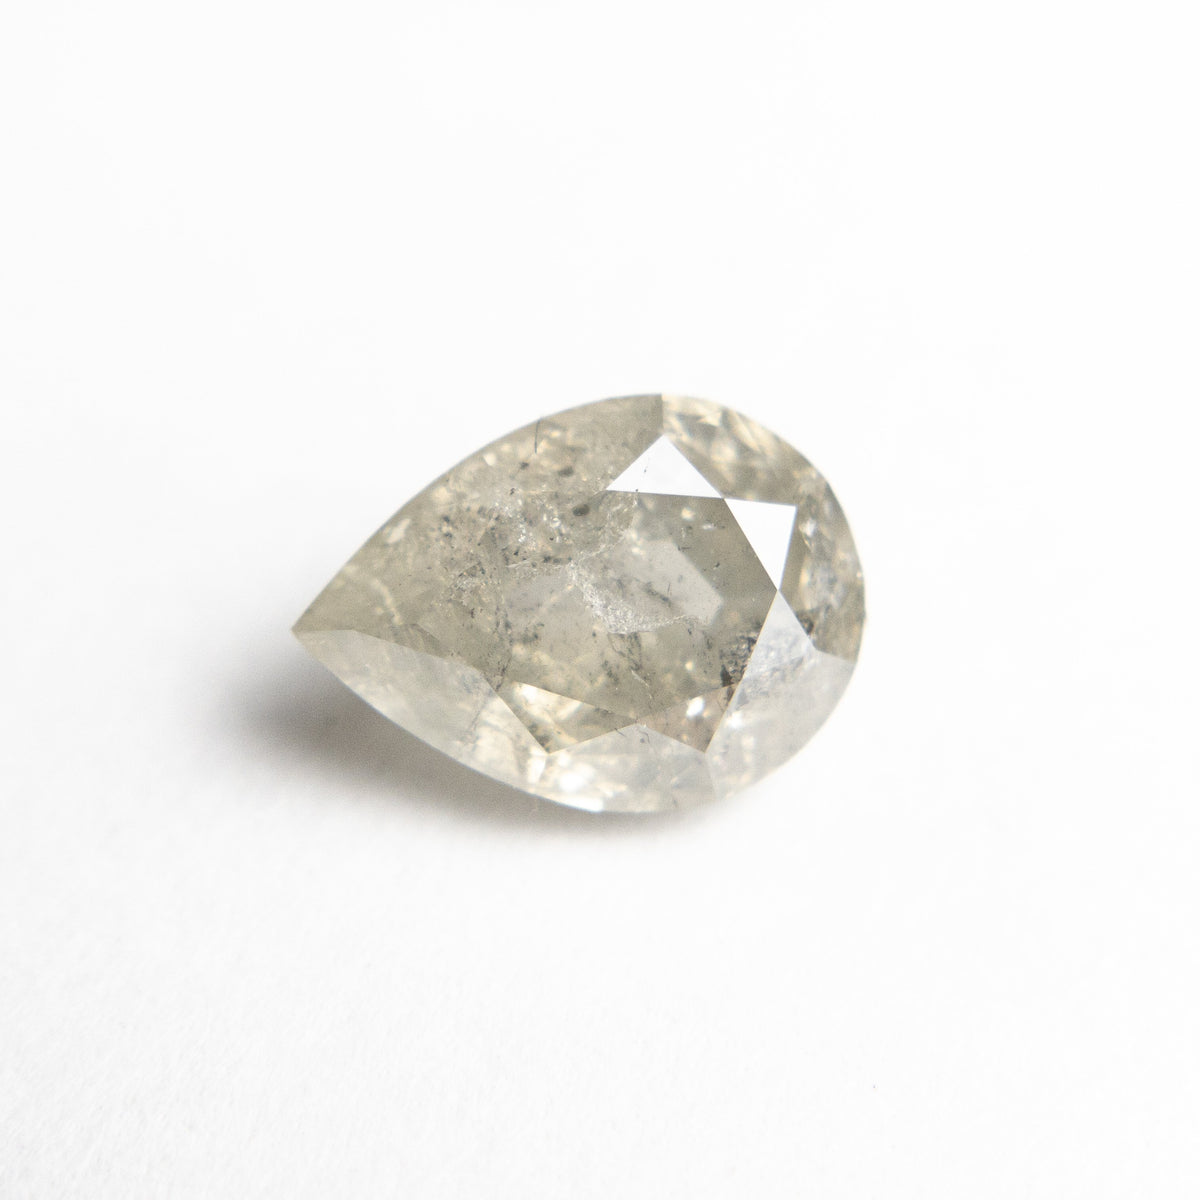 1.69ct 8.96x6.47x4.03mm Pear Double Cut 18508-06